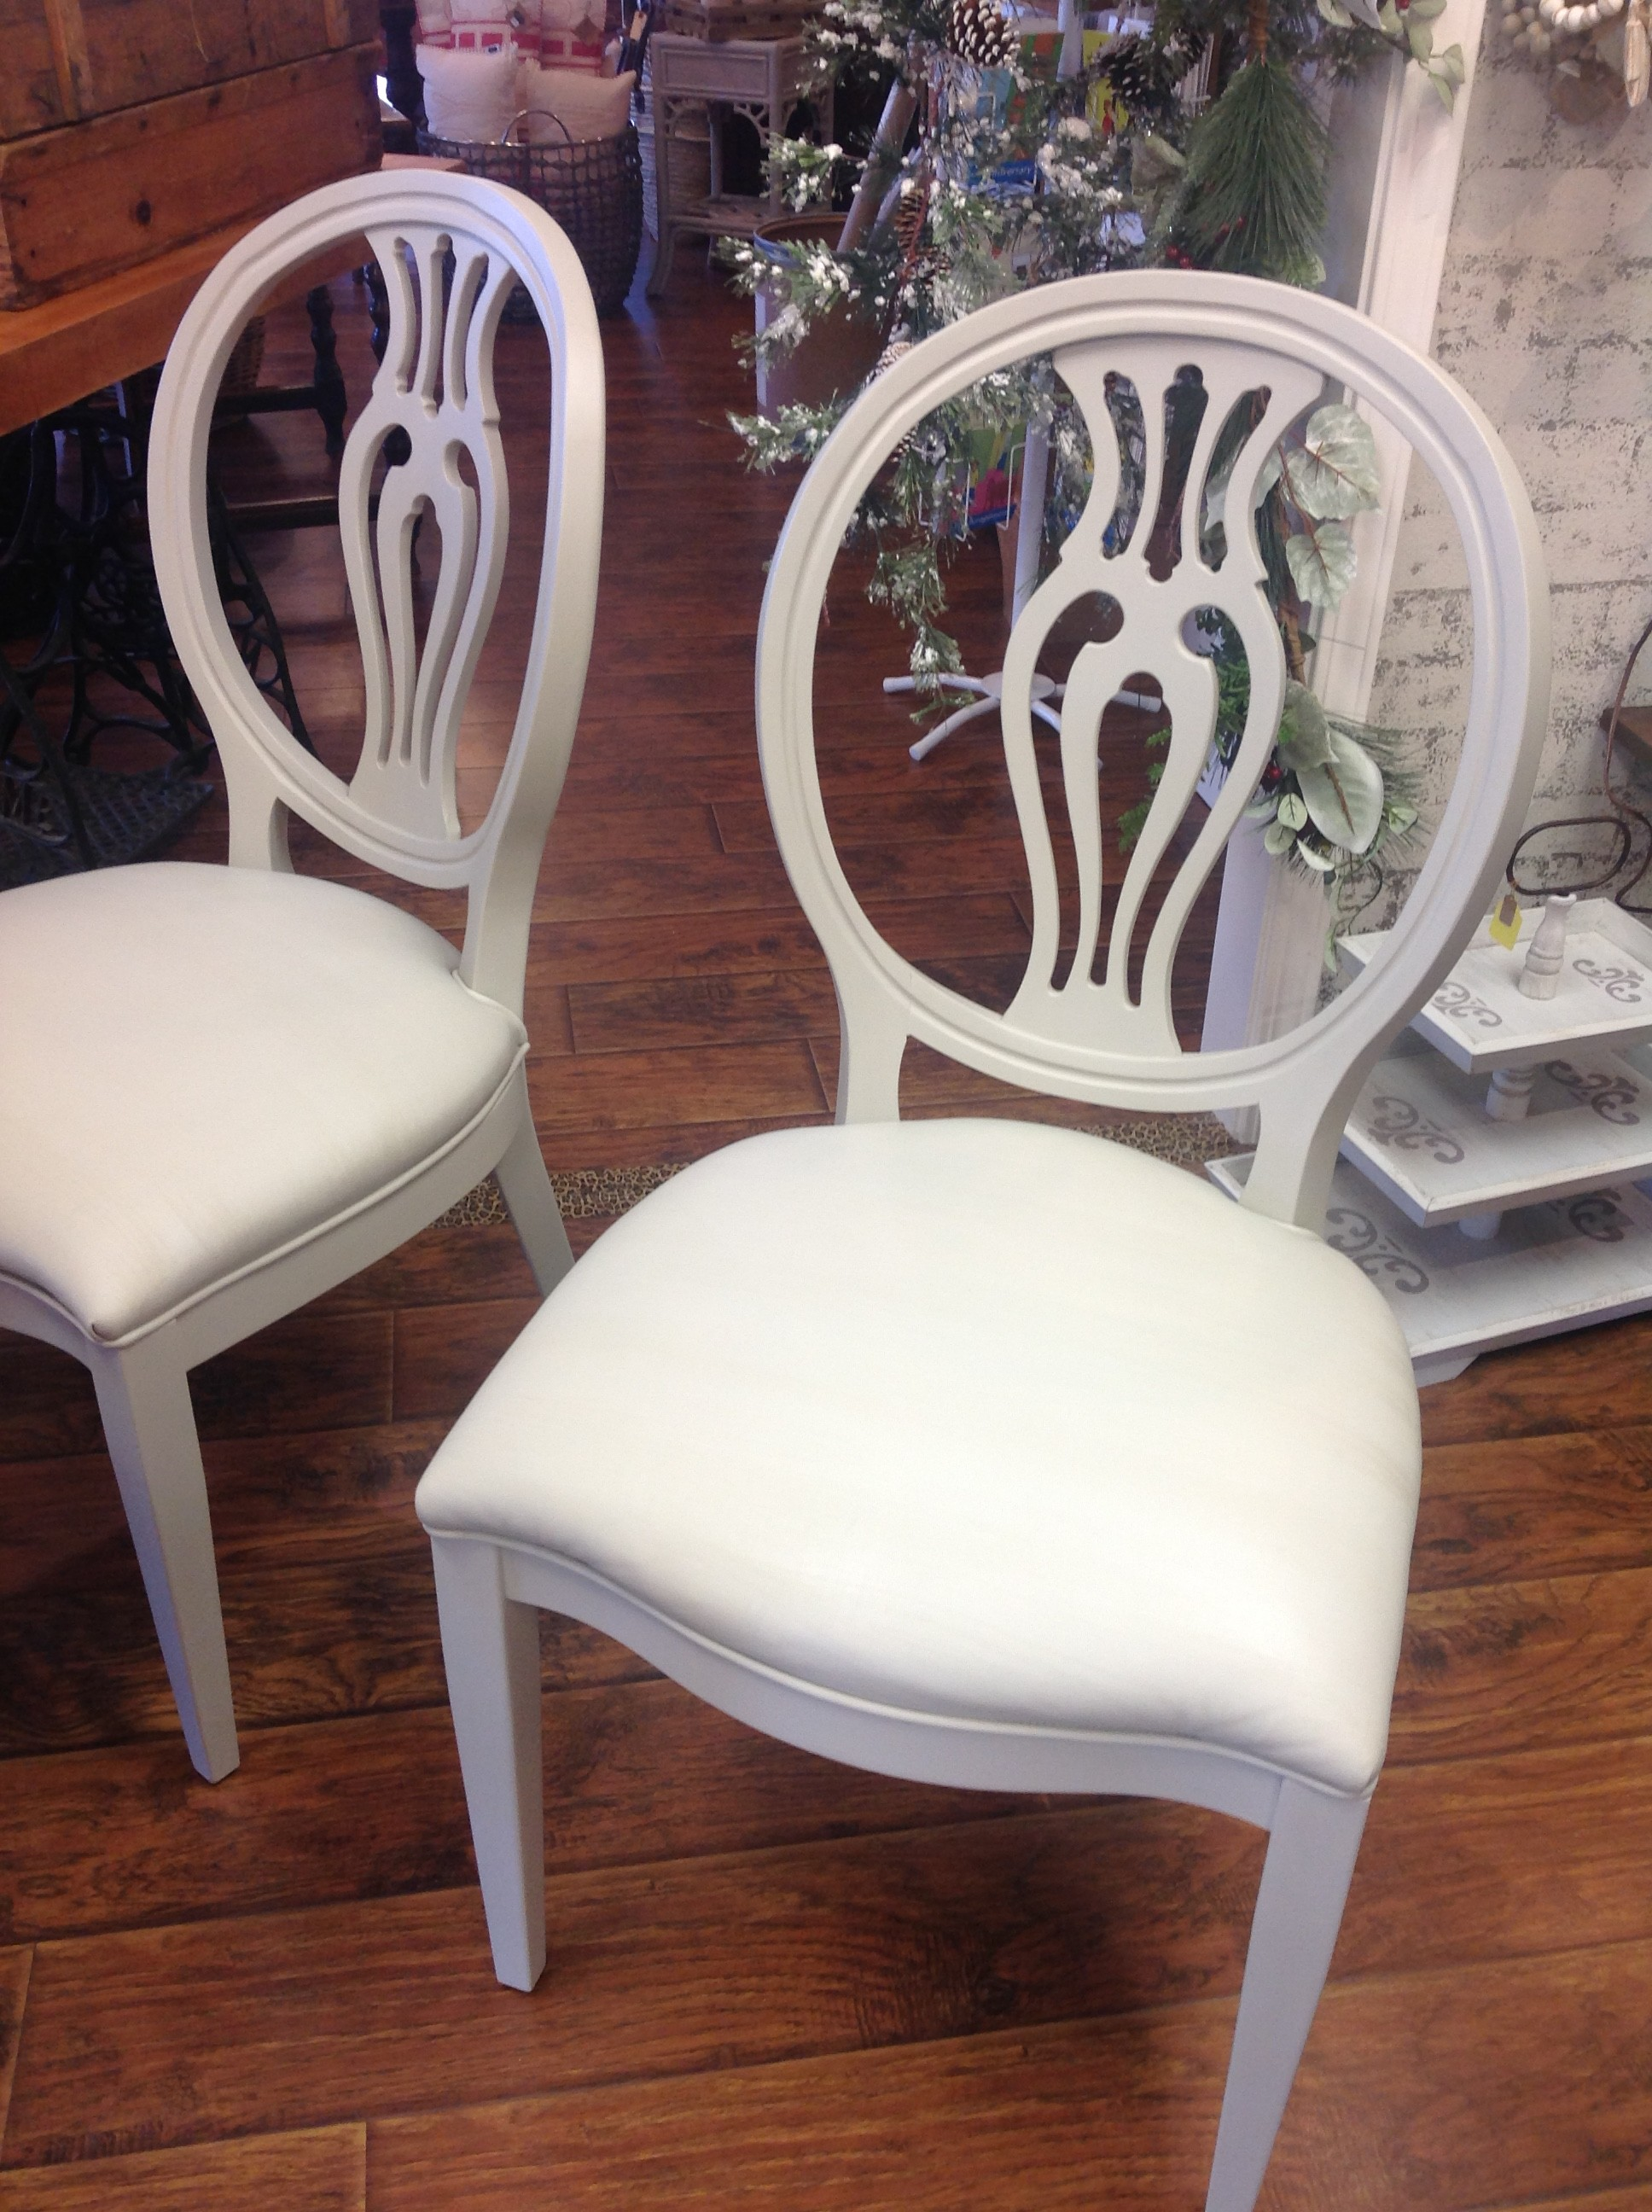 Now There Are New Chairs In The Dining Room That More French Country I Found Them My Travels Just Calling NameMrs Buuussey Here We